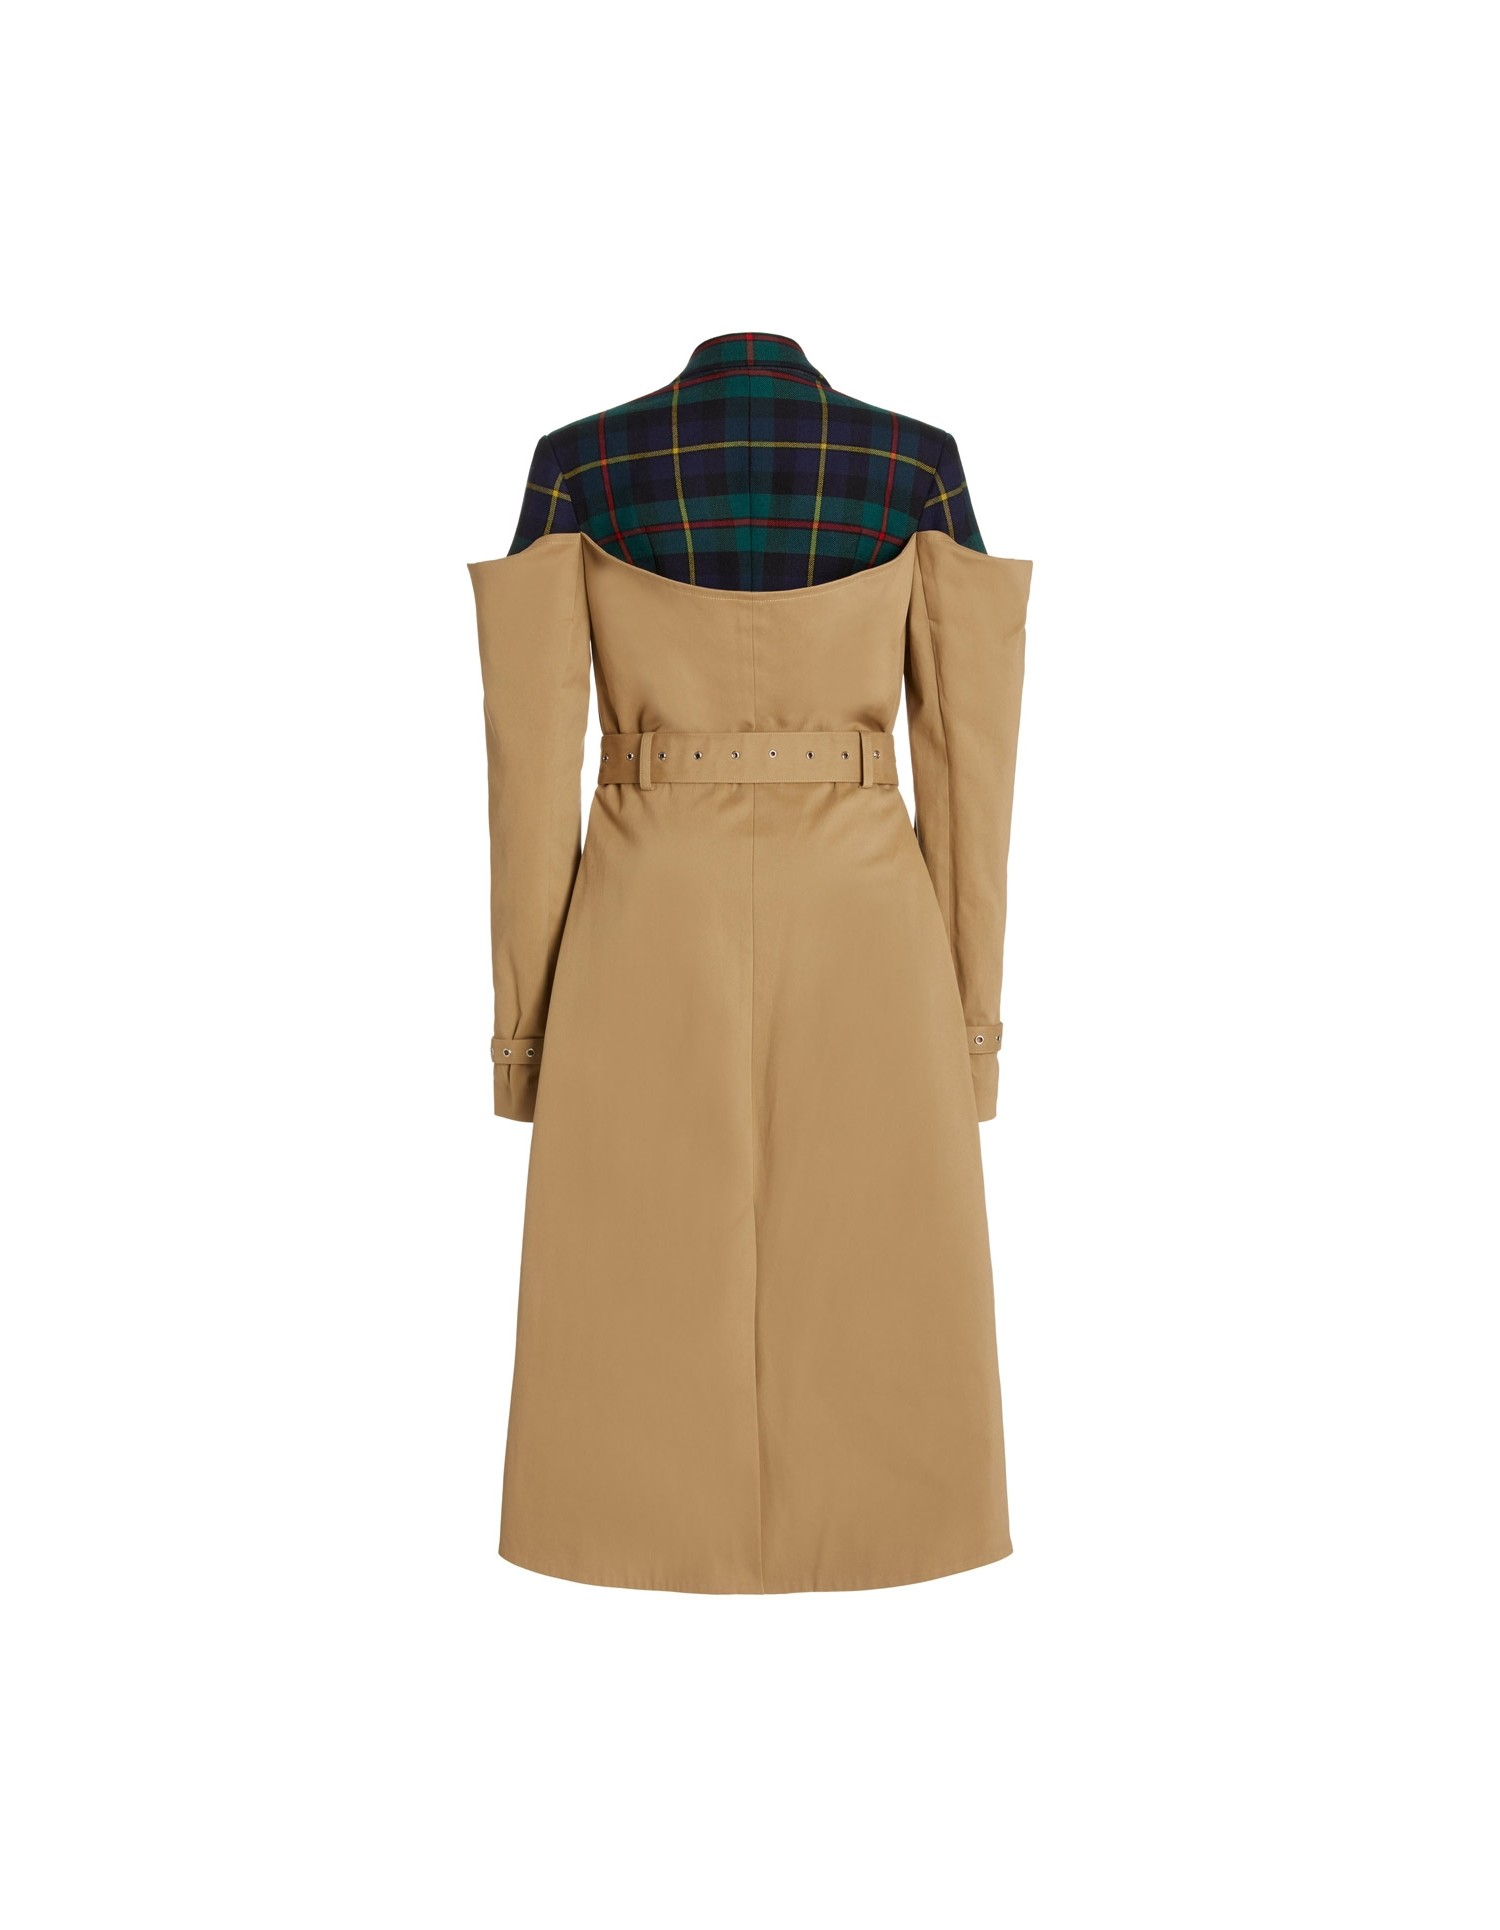 MONSE Deconstructed Trench Coat in Khaki and Multi Plaid Flat Back